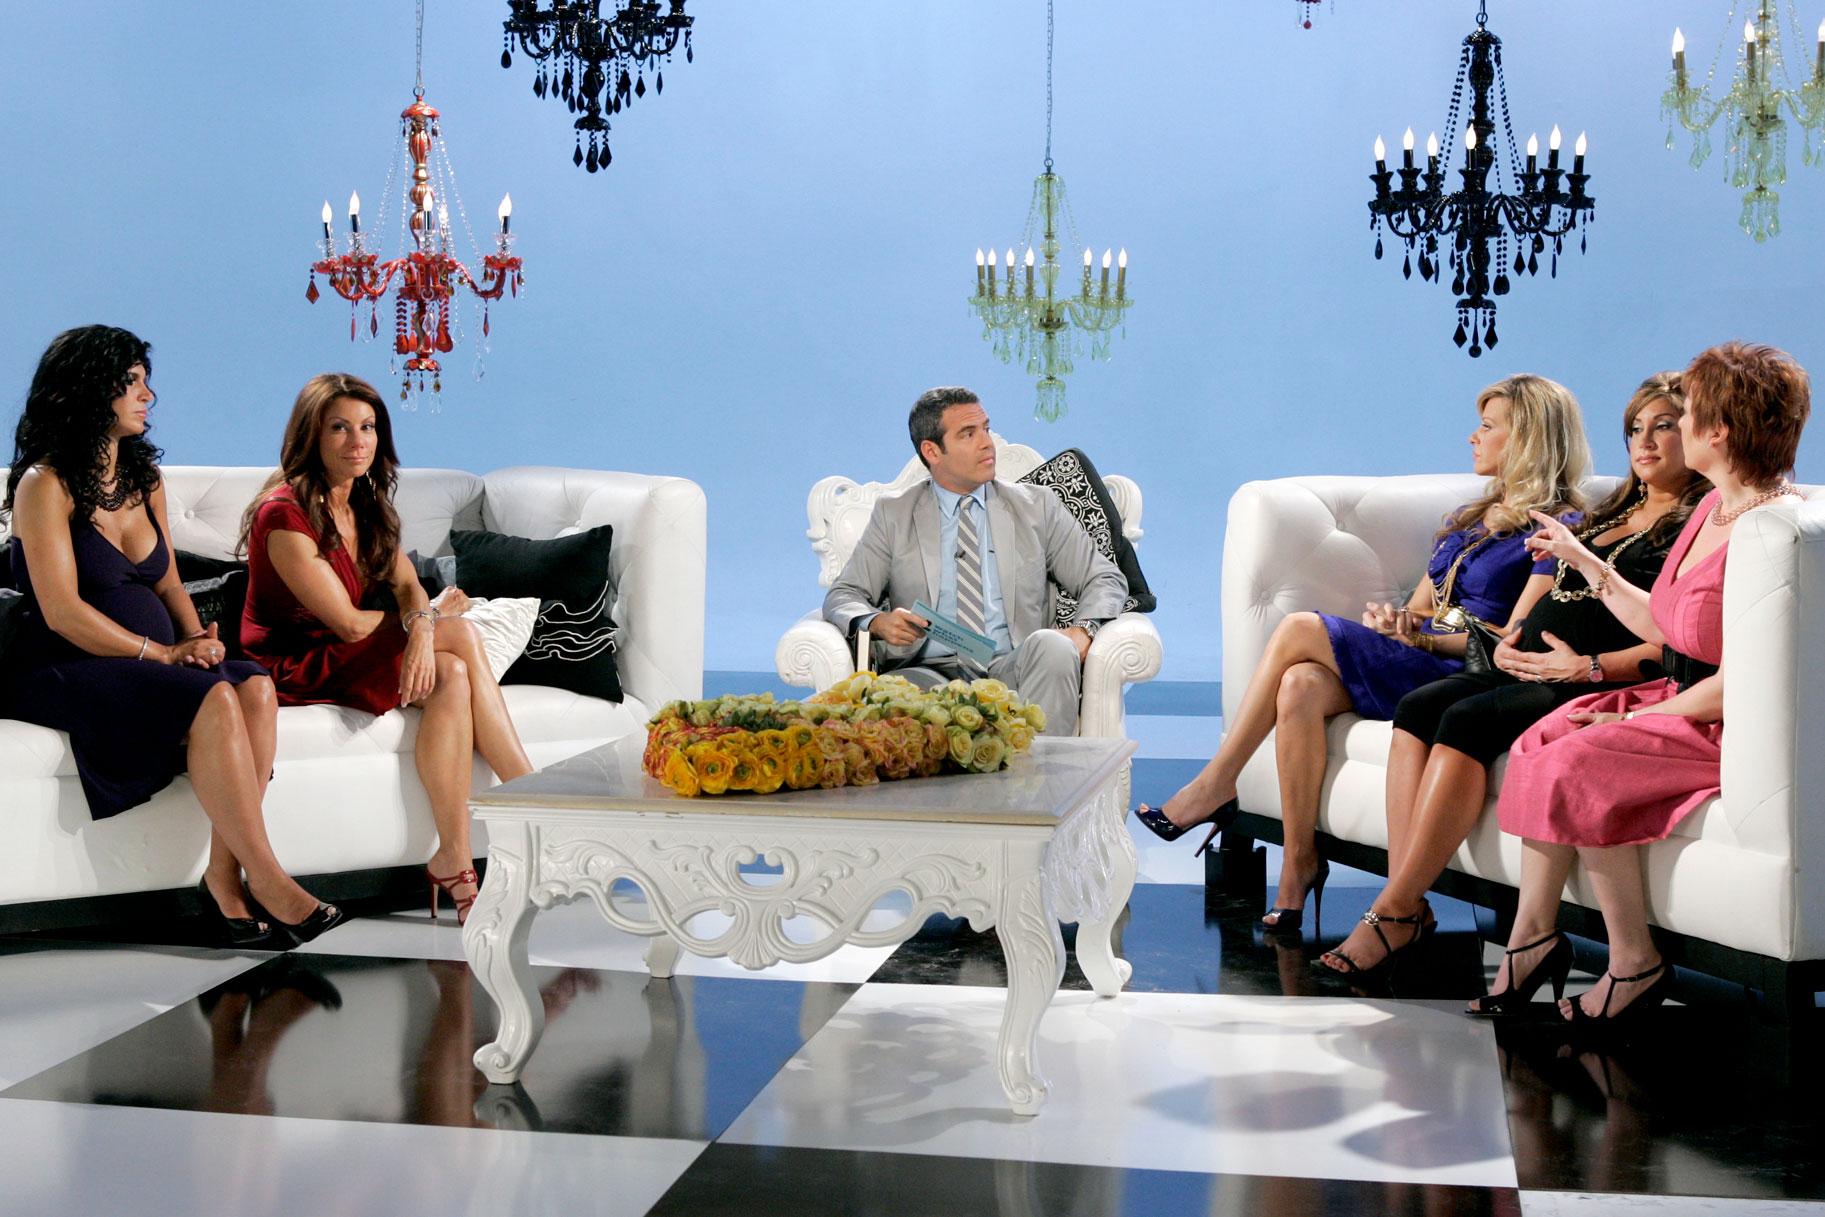 The Real Housewives of New Jersey Season 1 Reunion